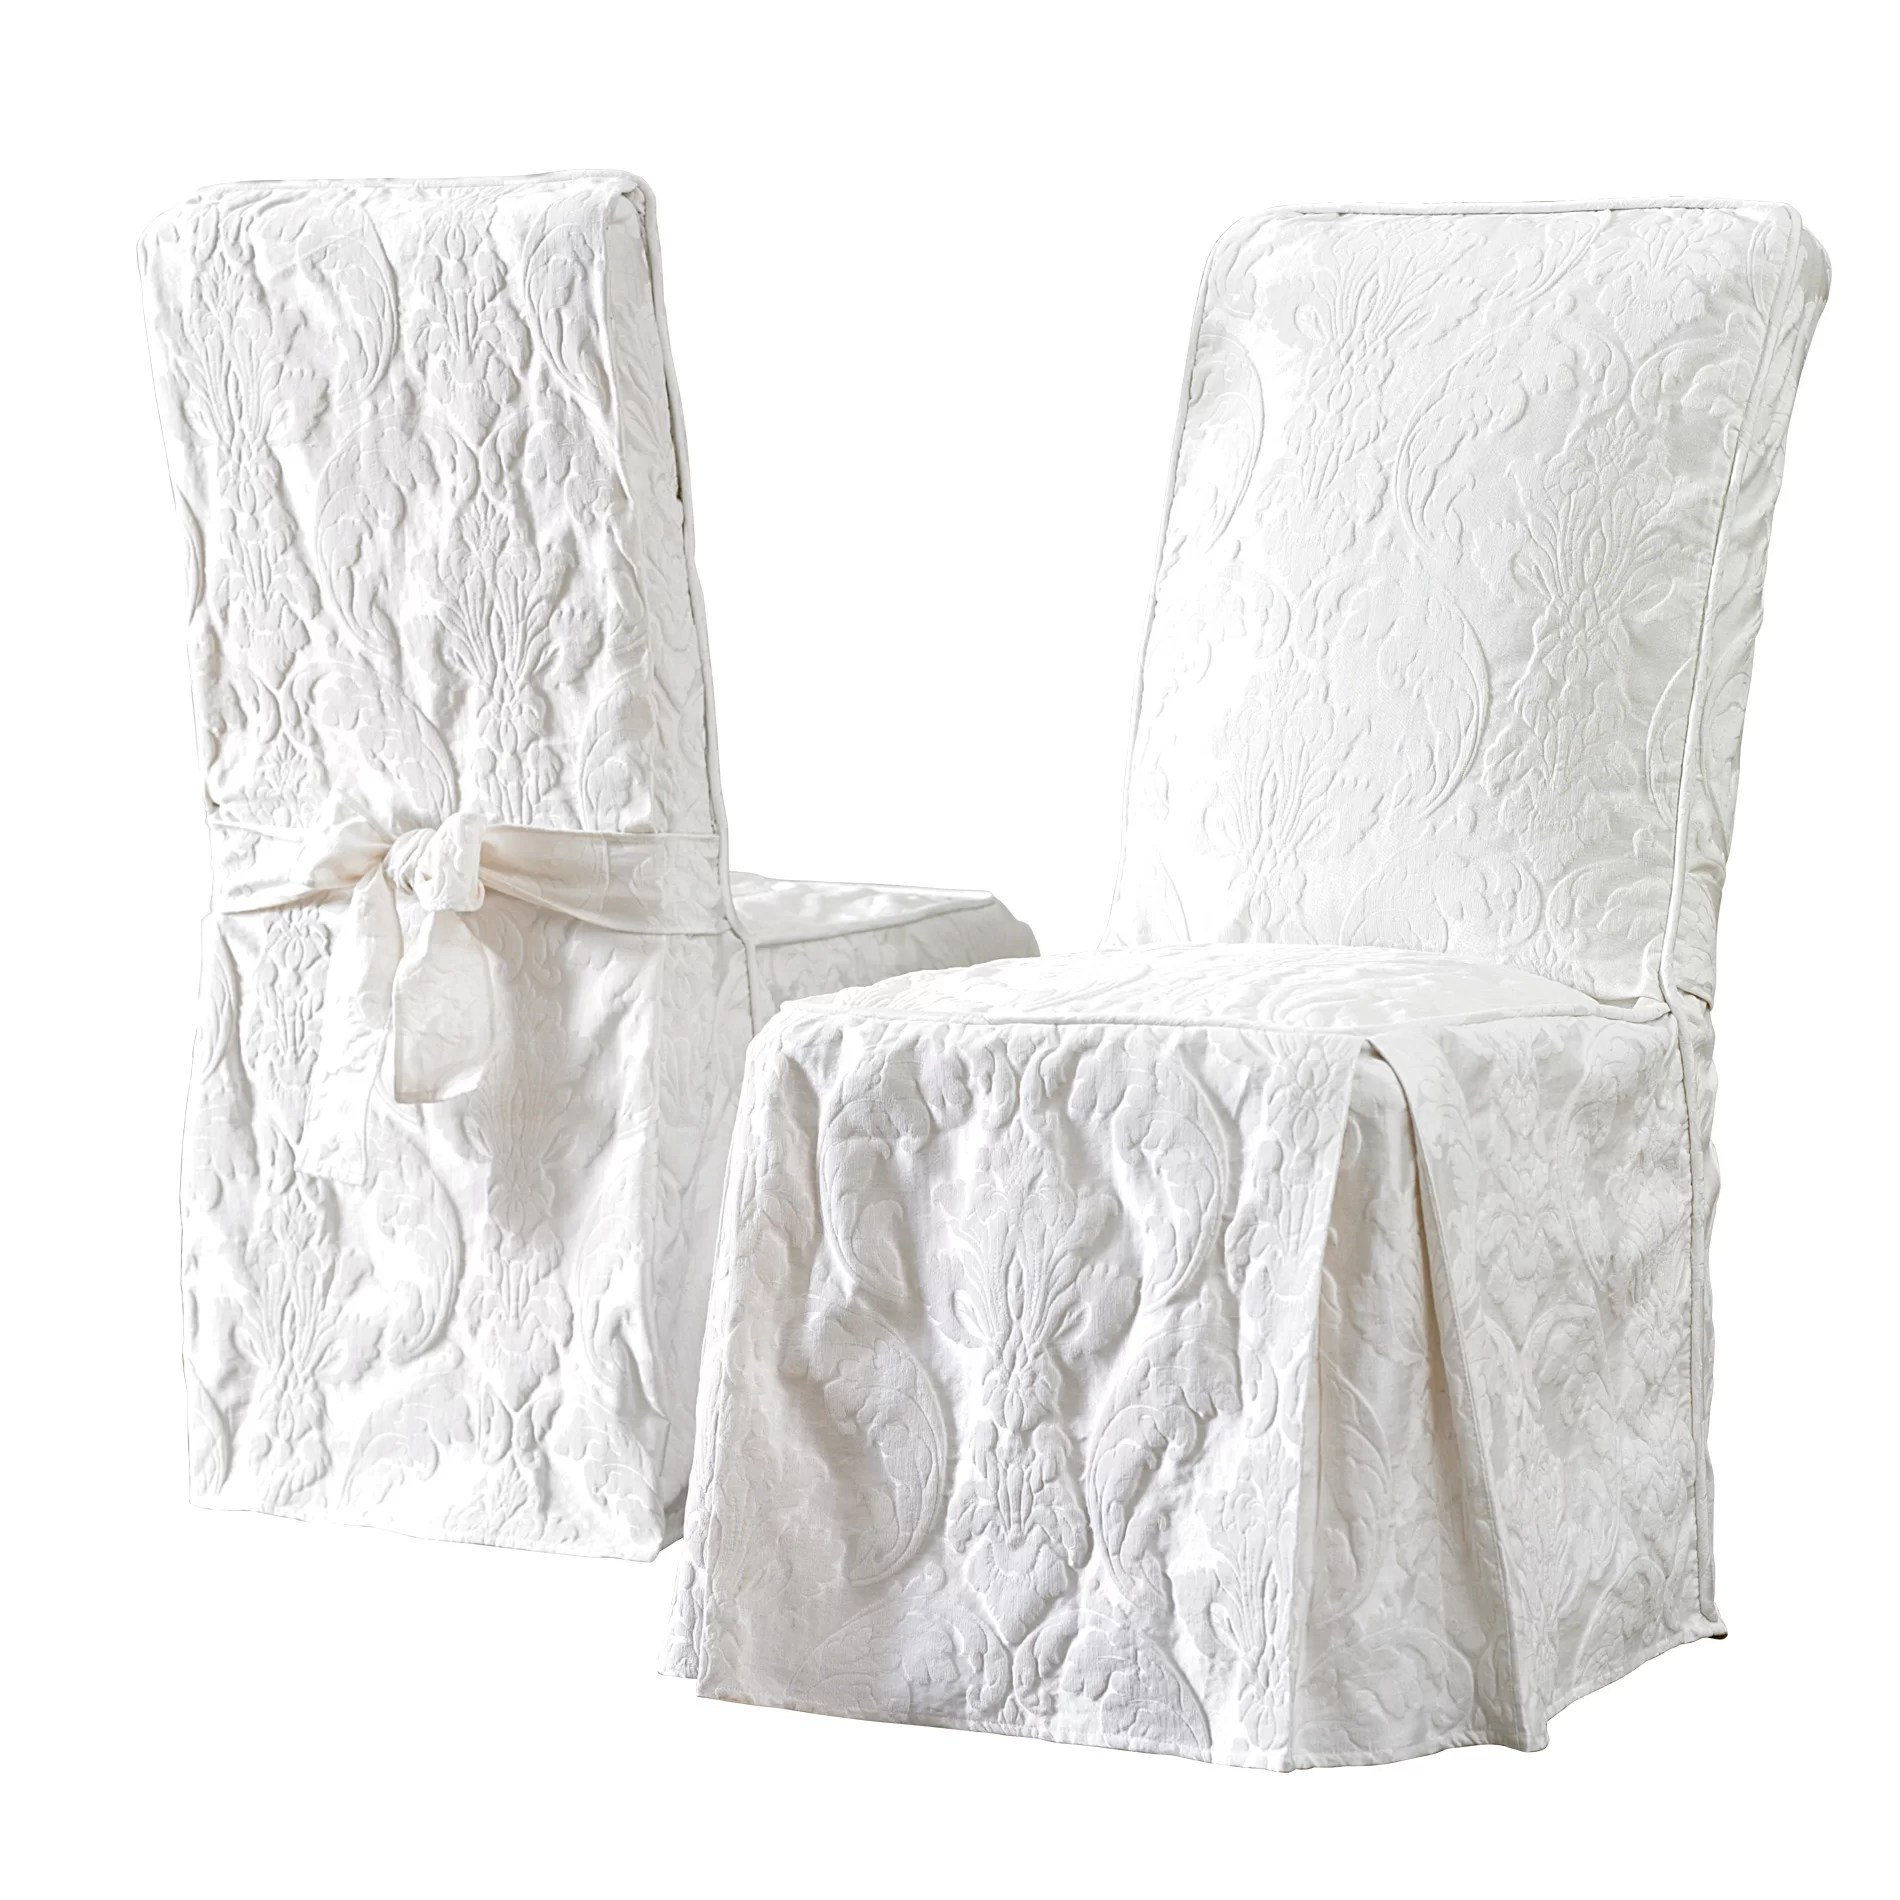 dining chair covers bed bath and beyond herman miller desk sure fit matelasse damask long slipcover reviews